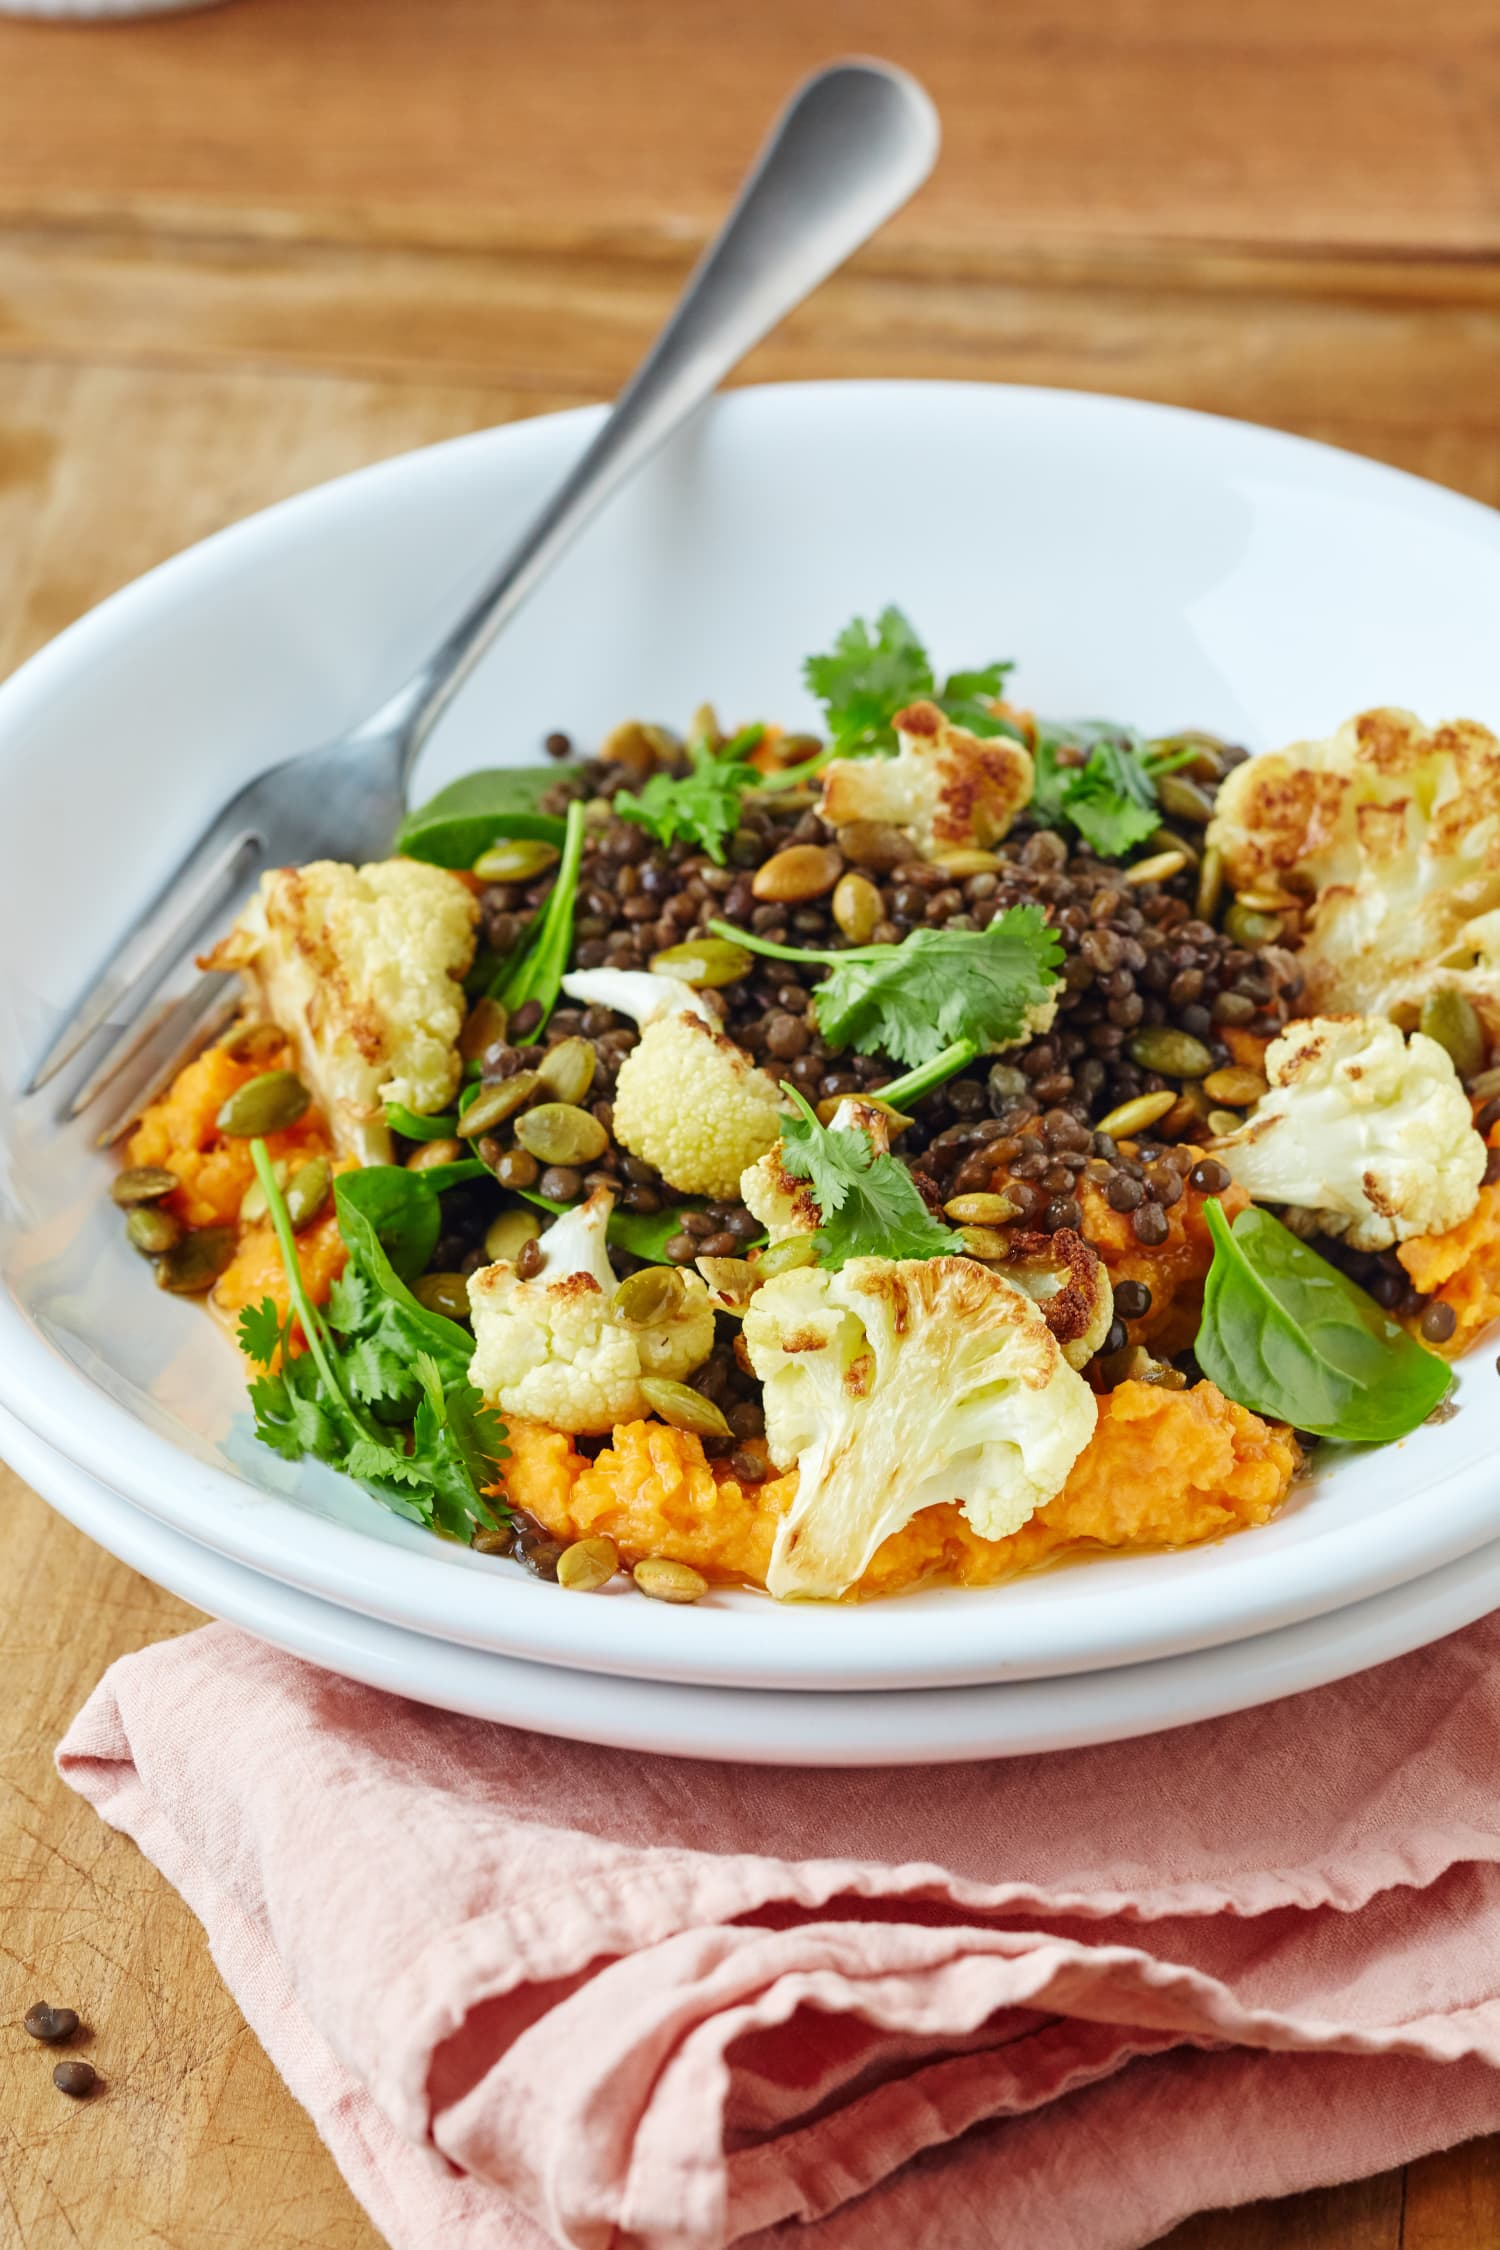 7 Super-Satisfying Vegetarian Lunch Recipes Under 400 Calories